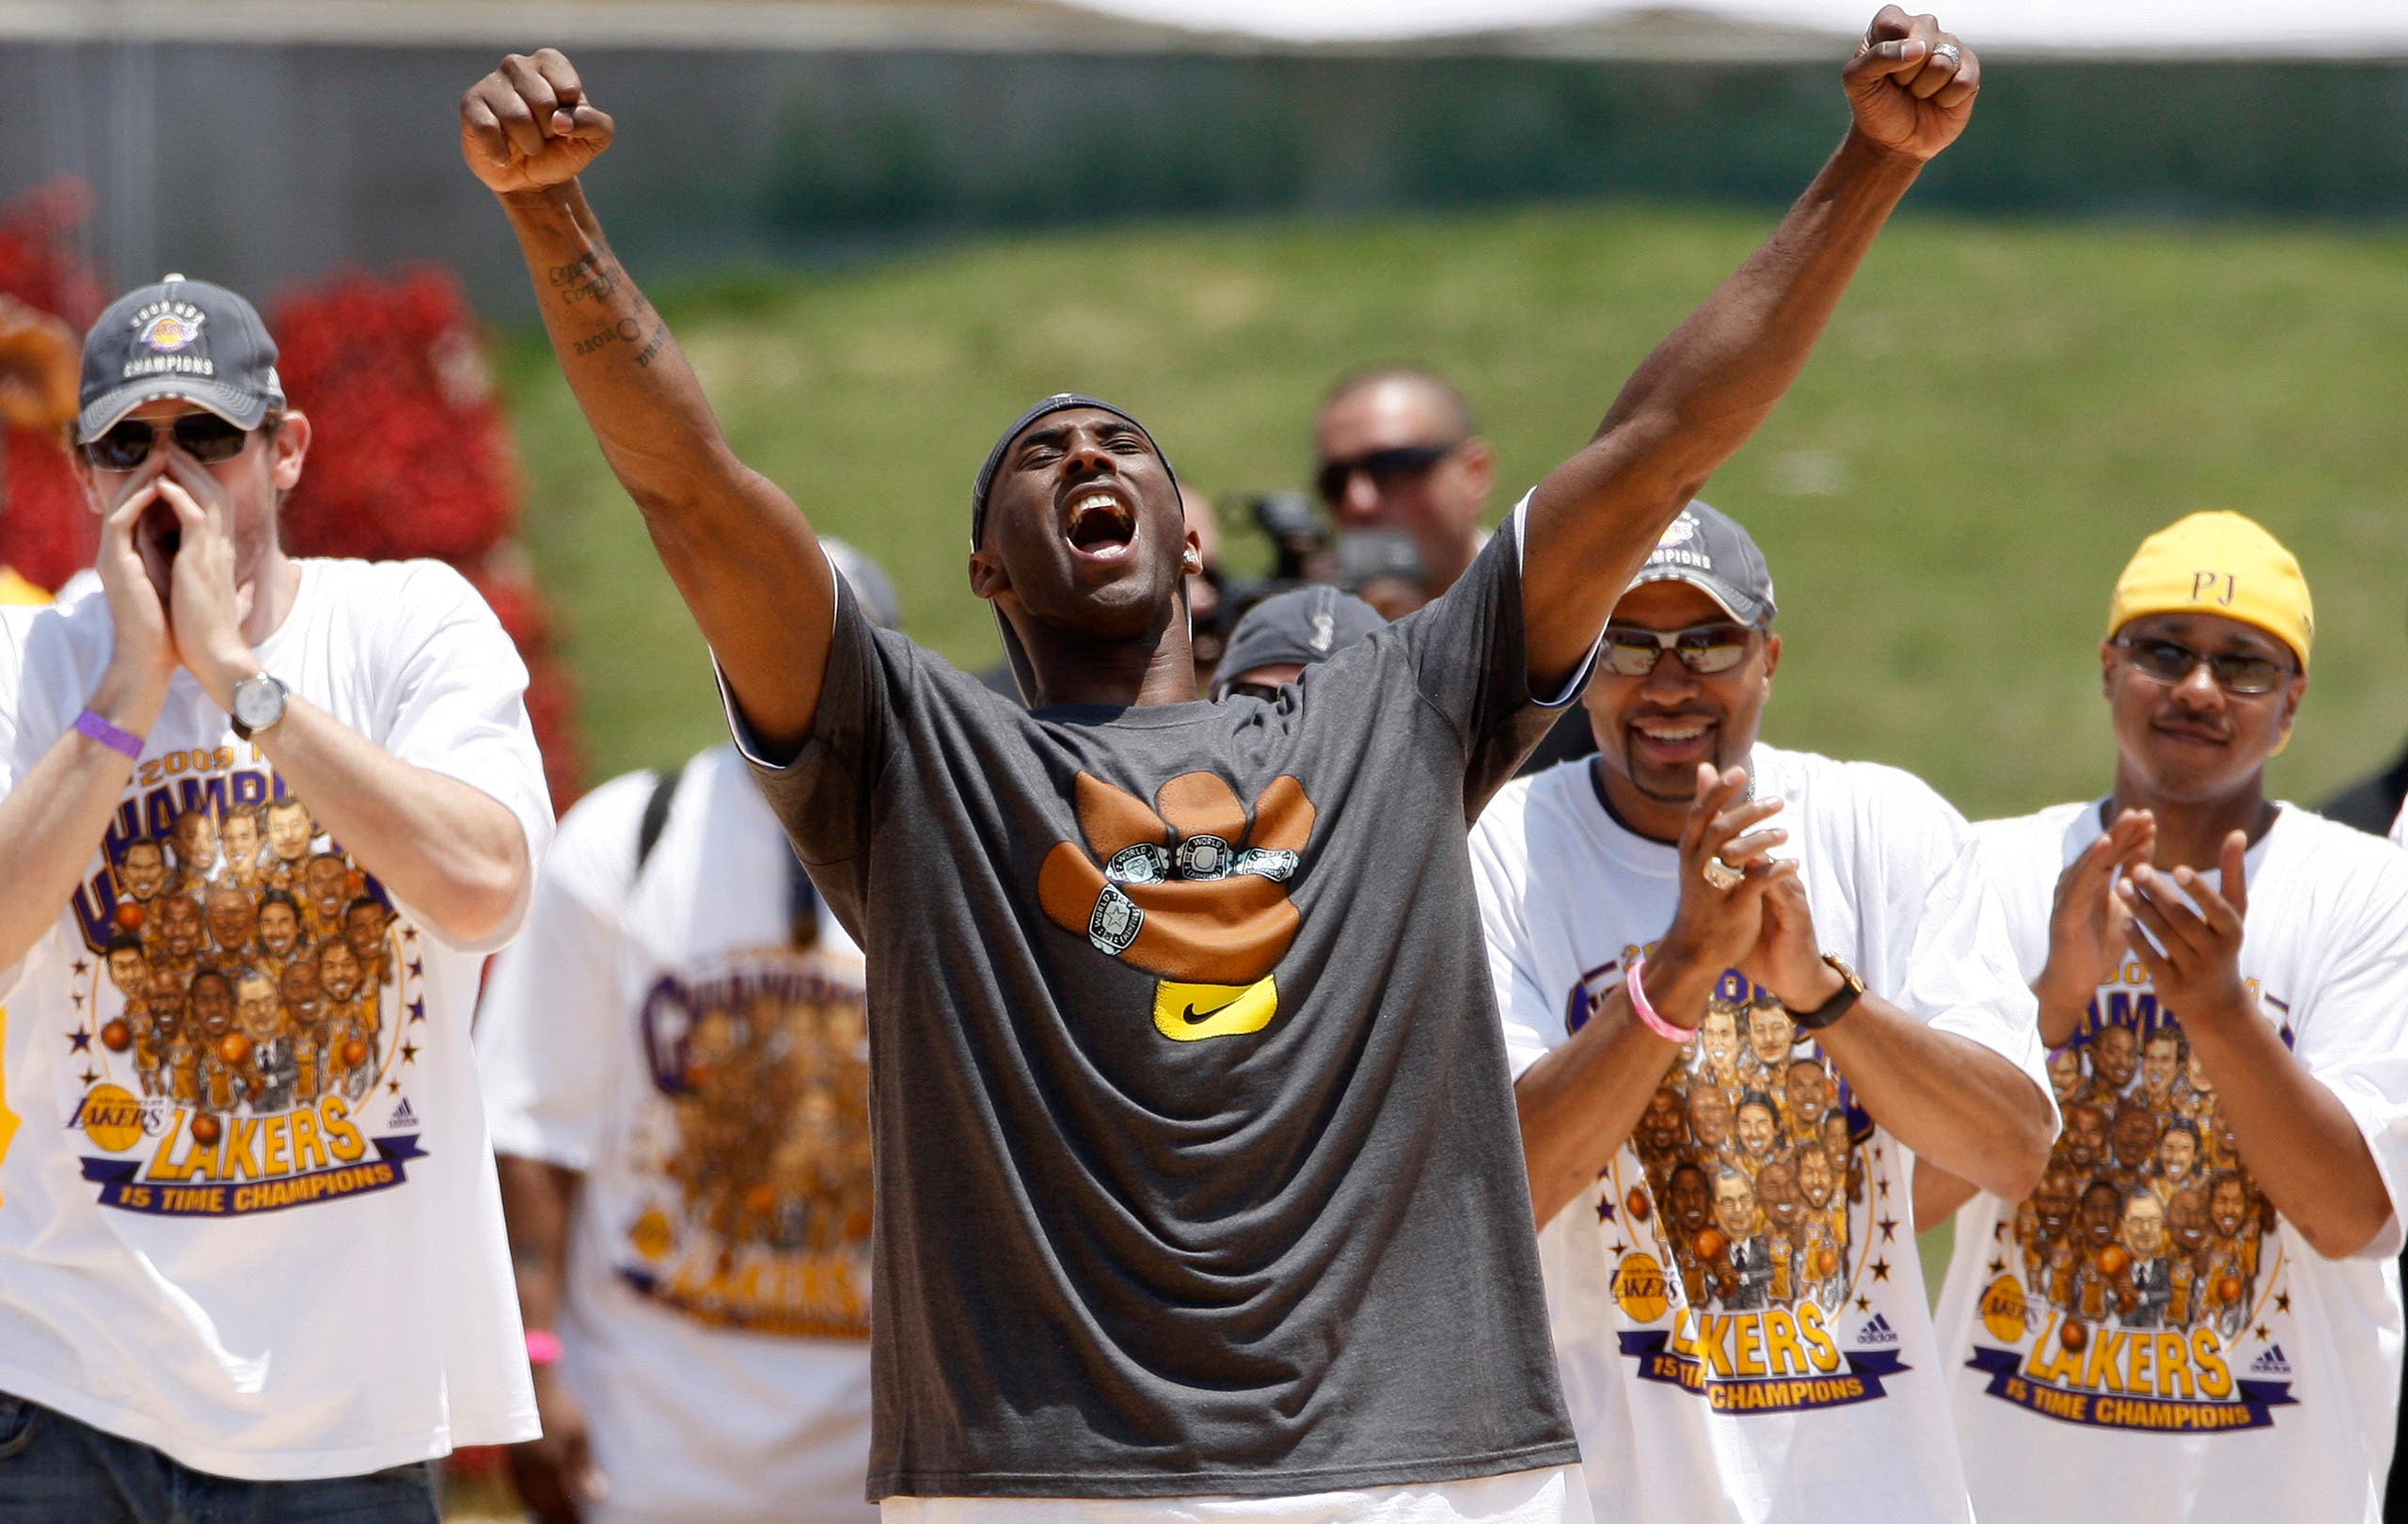 Kobe Bryant celebrates while on stage during the Lakers' NBA championship victory rally at the Los Angeles Memorial Coliseum in Los Angeles on Wednesday, June 17, 2009. (AP)